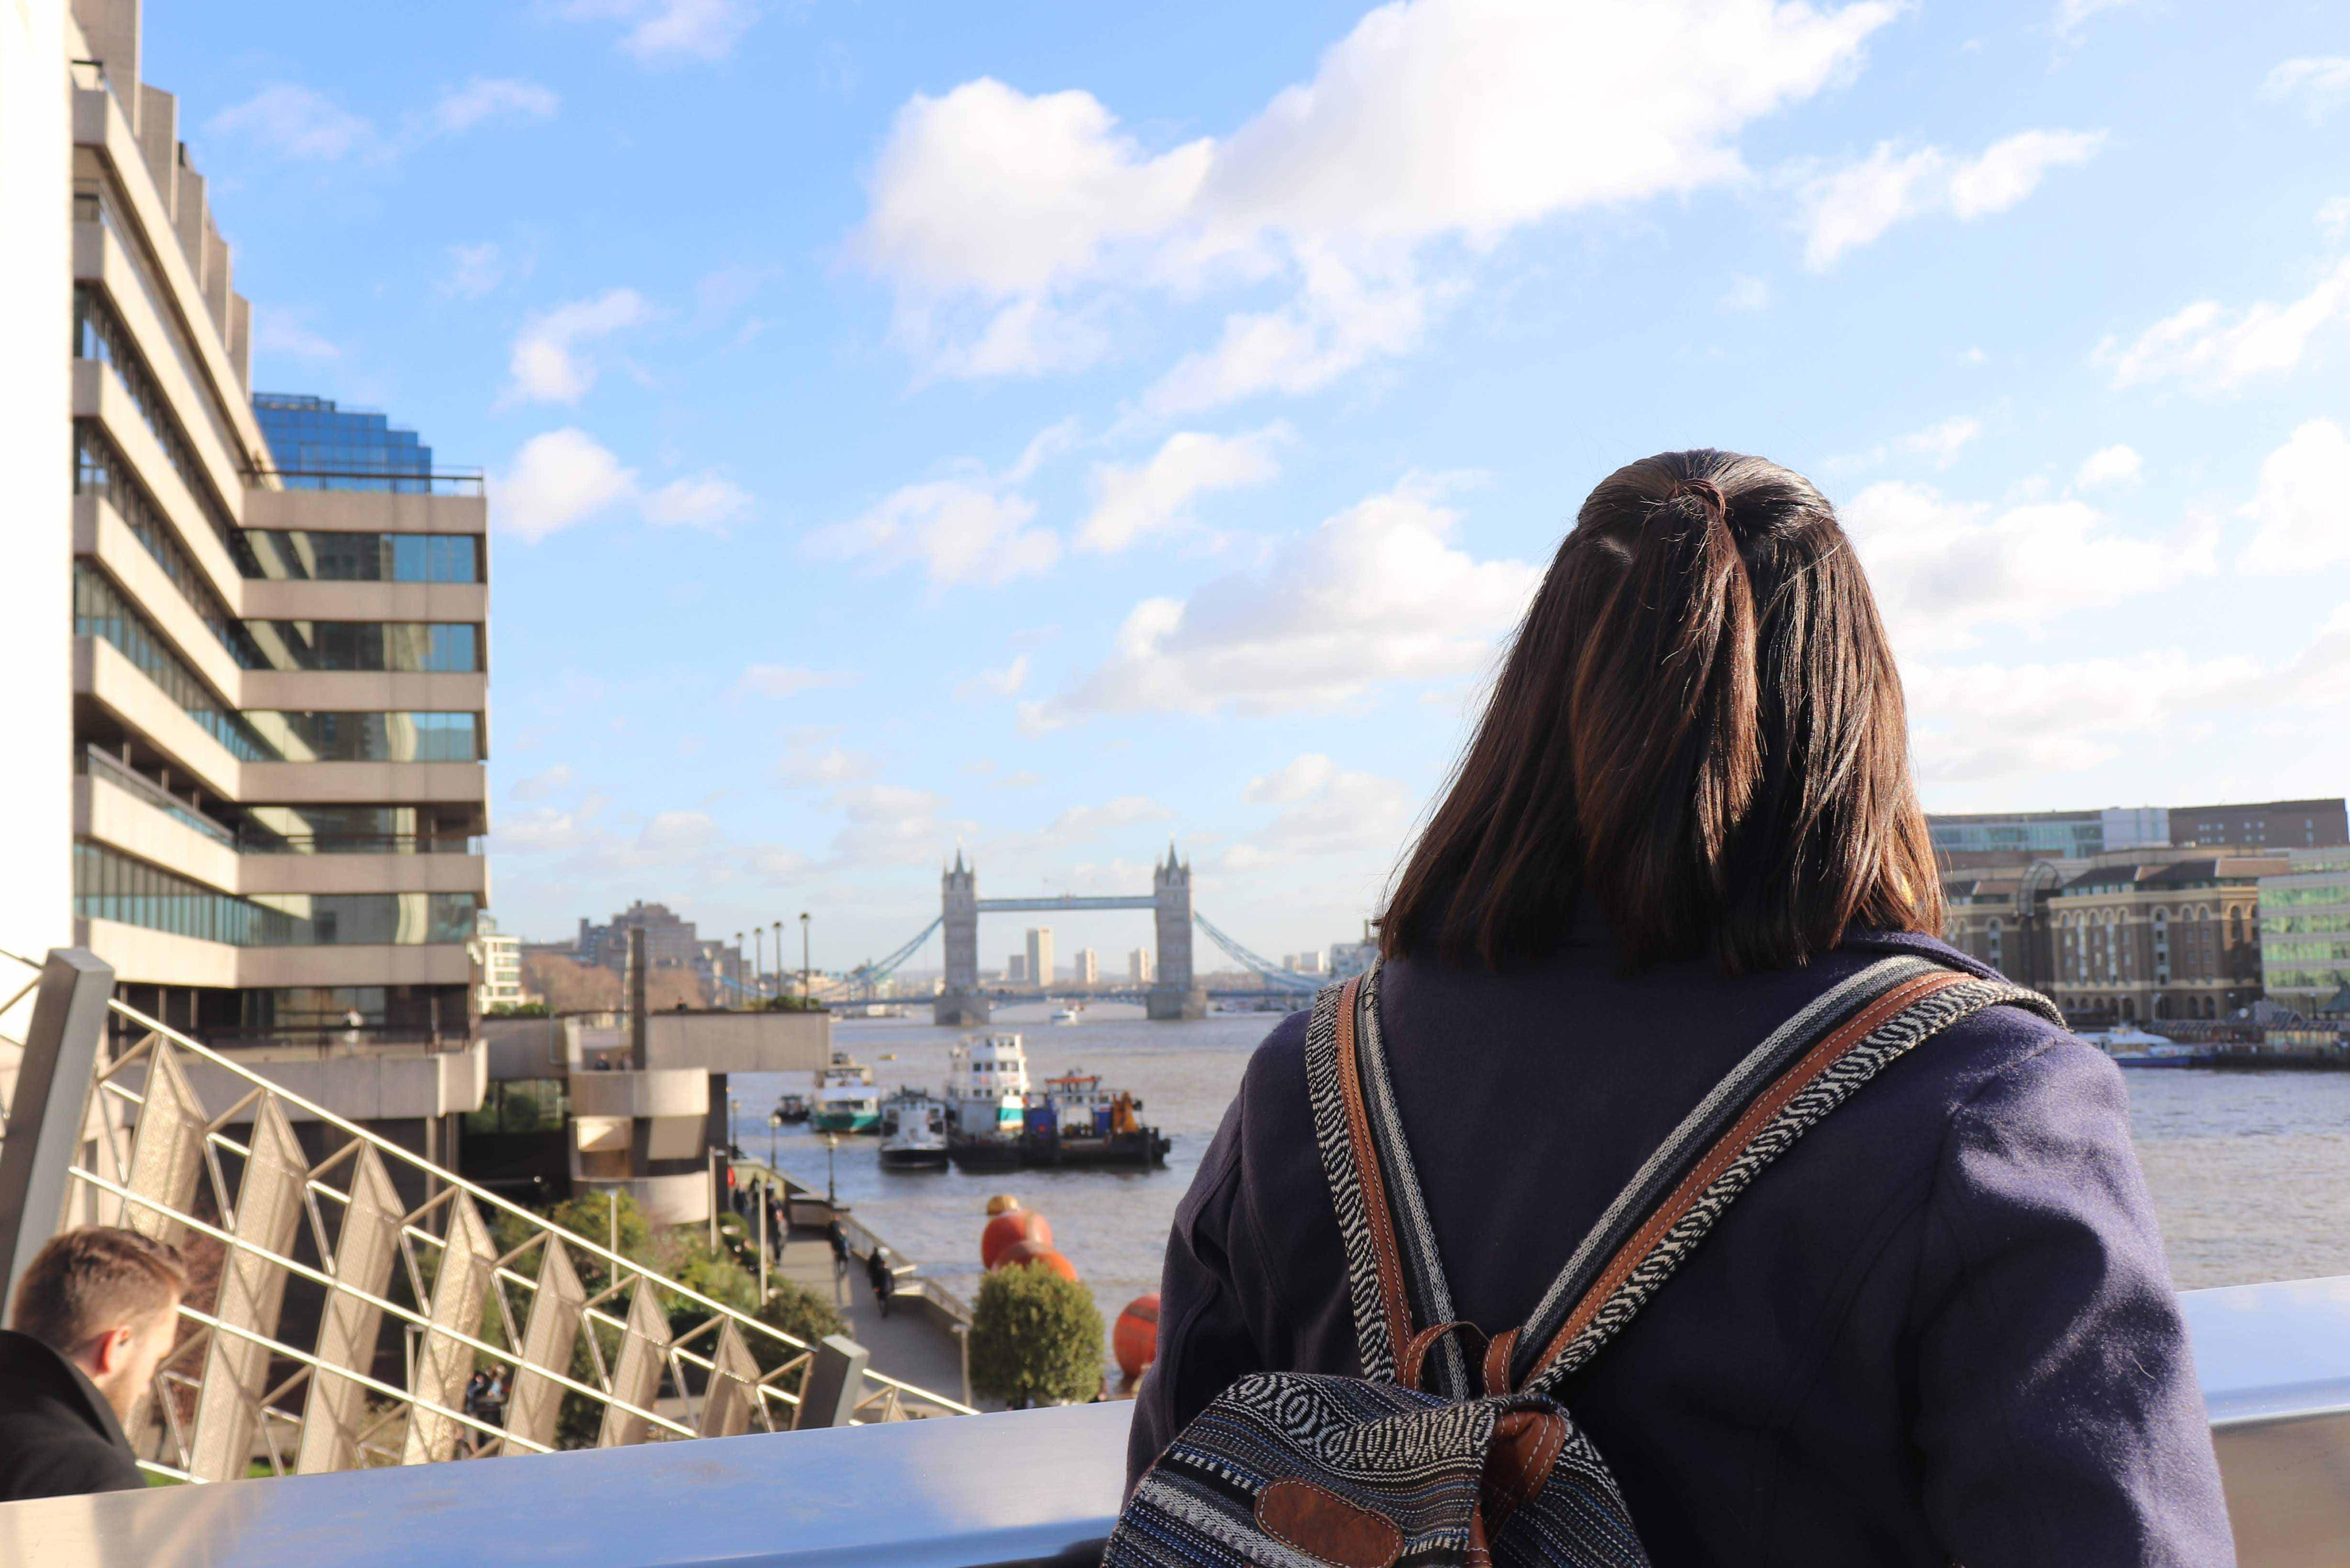 Mia standing looking out at the view from a bridge in London.